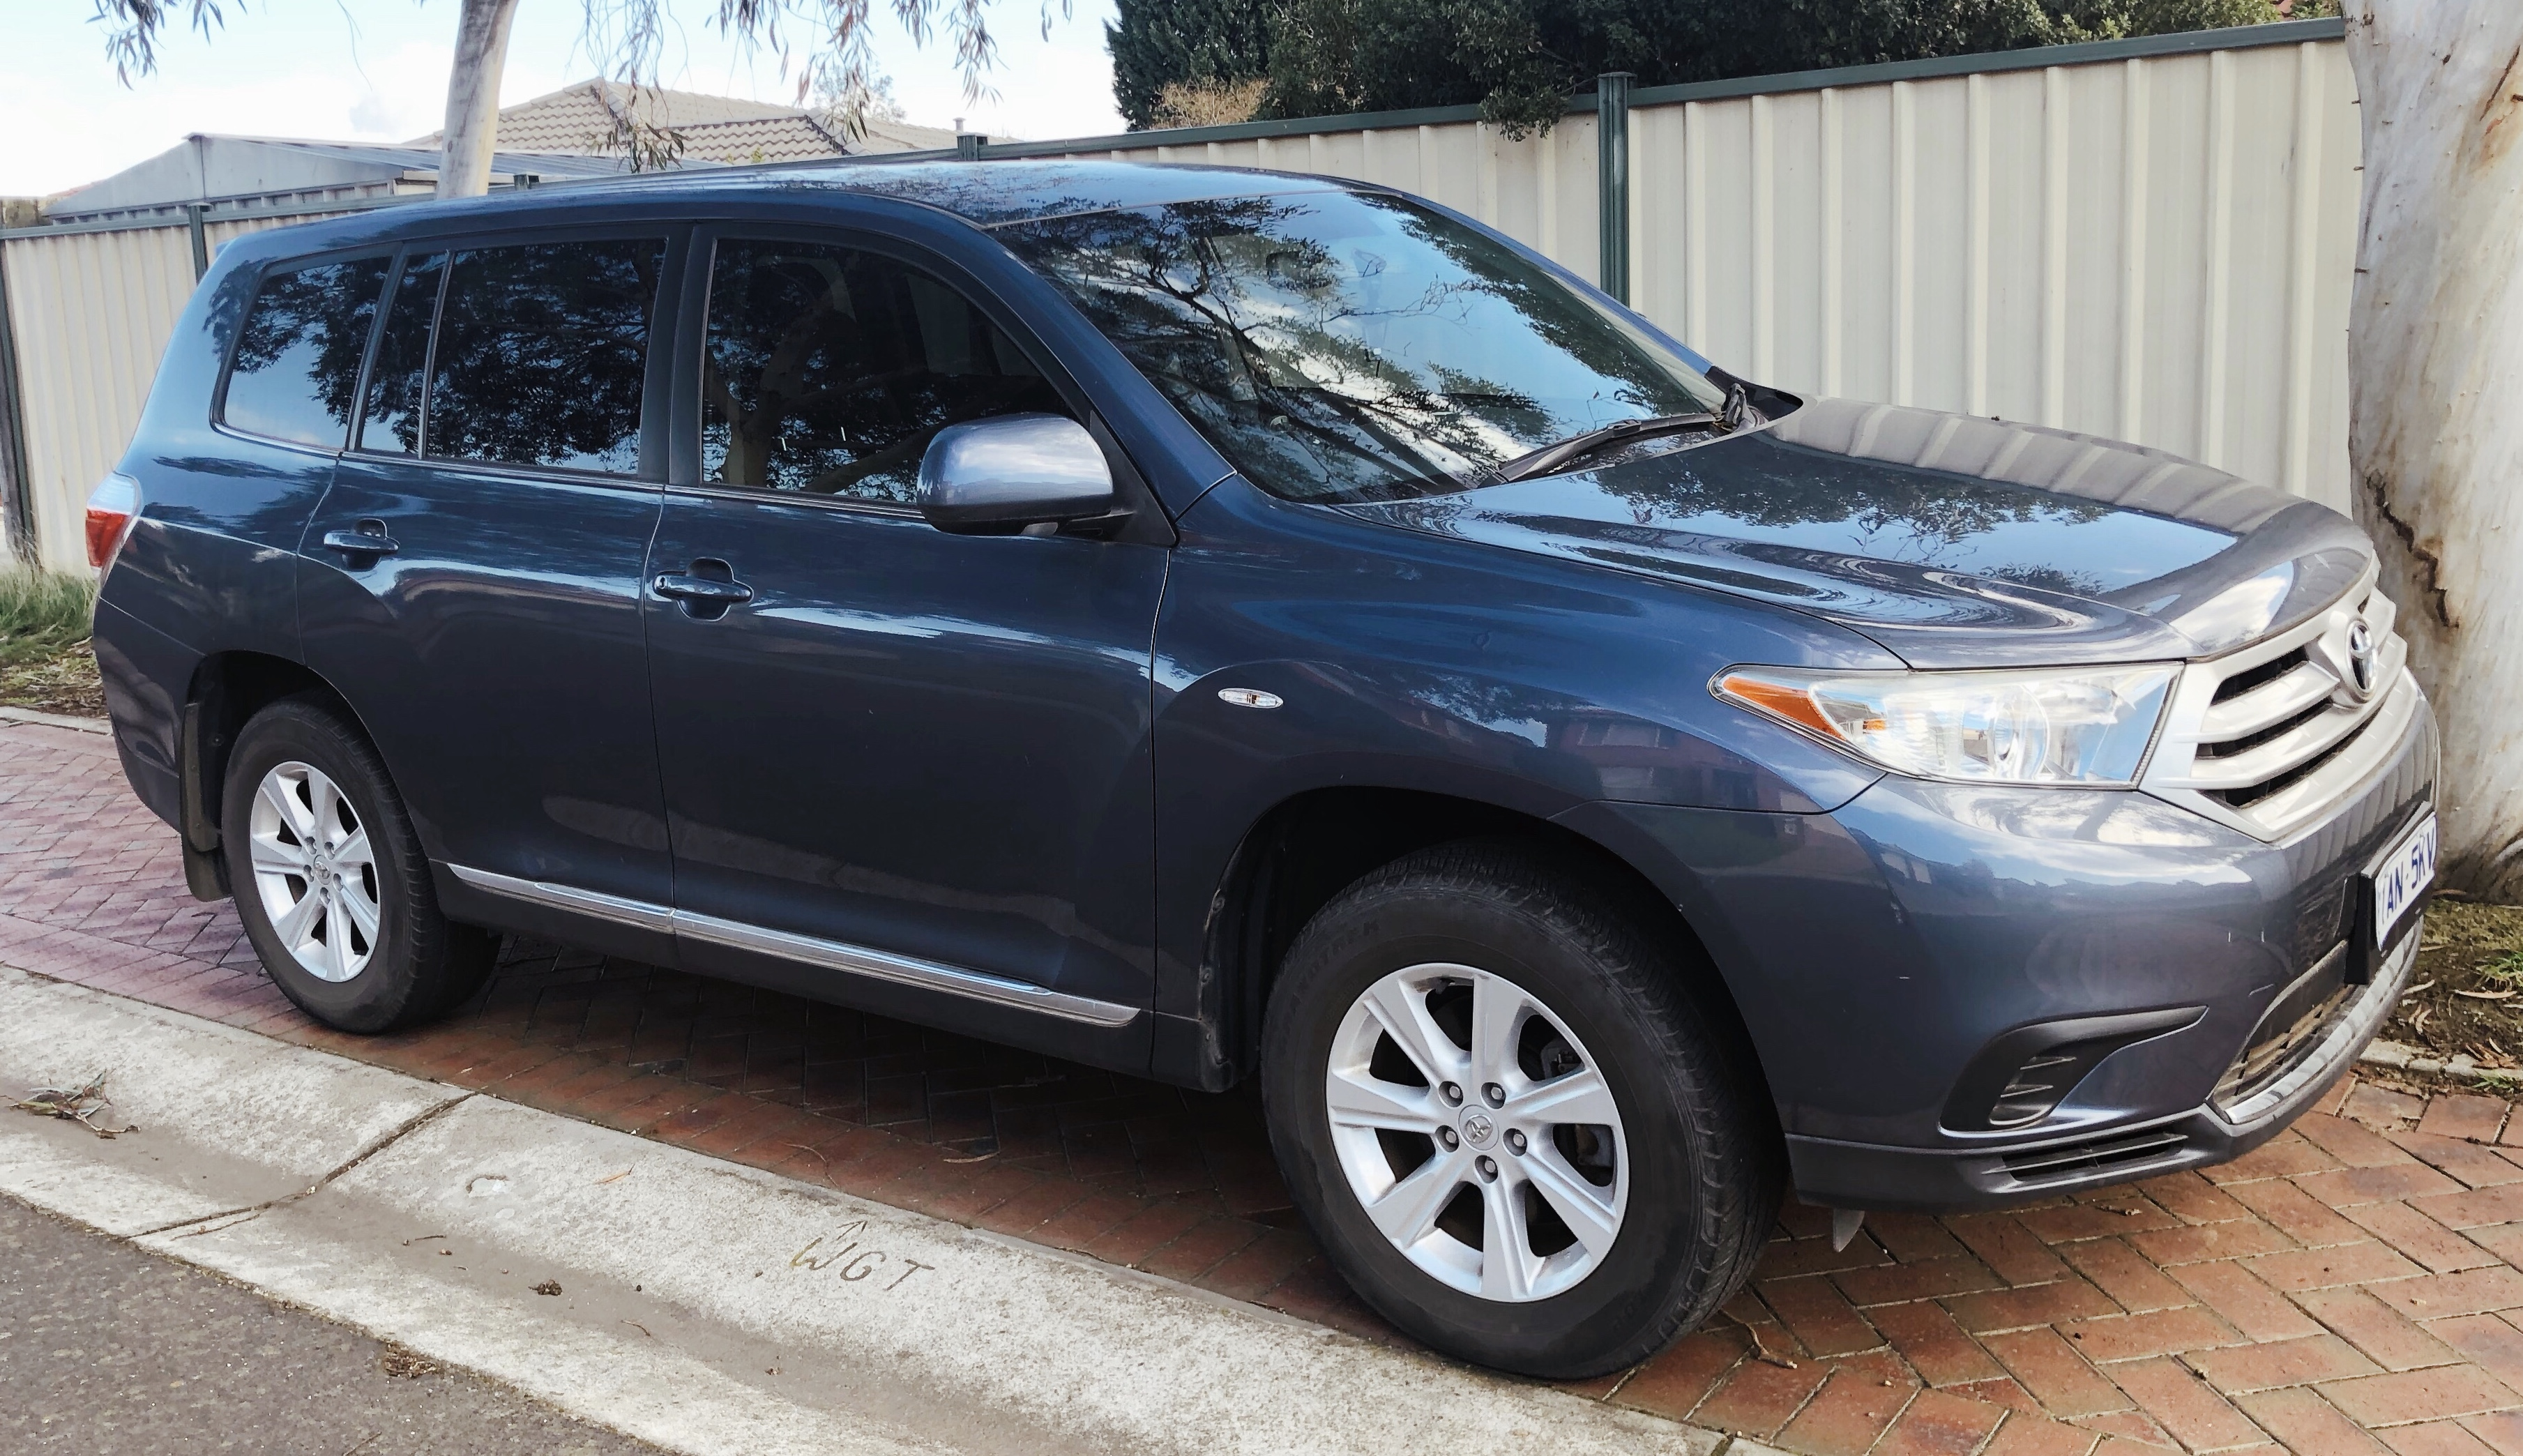 Picture of wenjin's 2013 Toyota Kluger